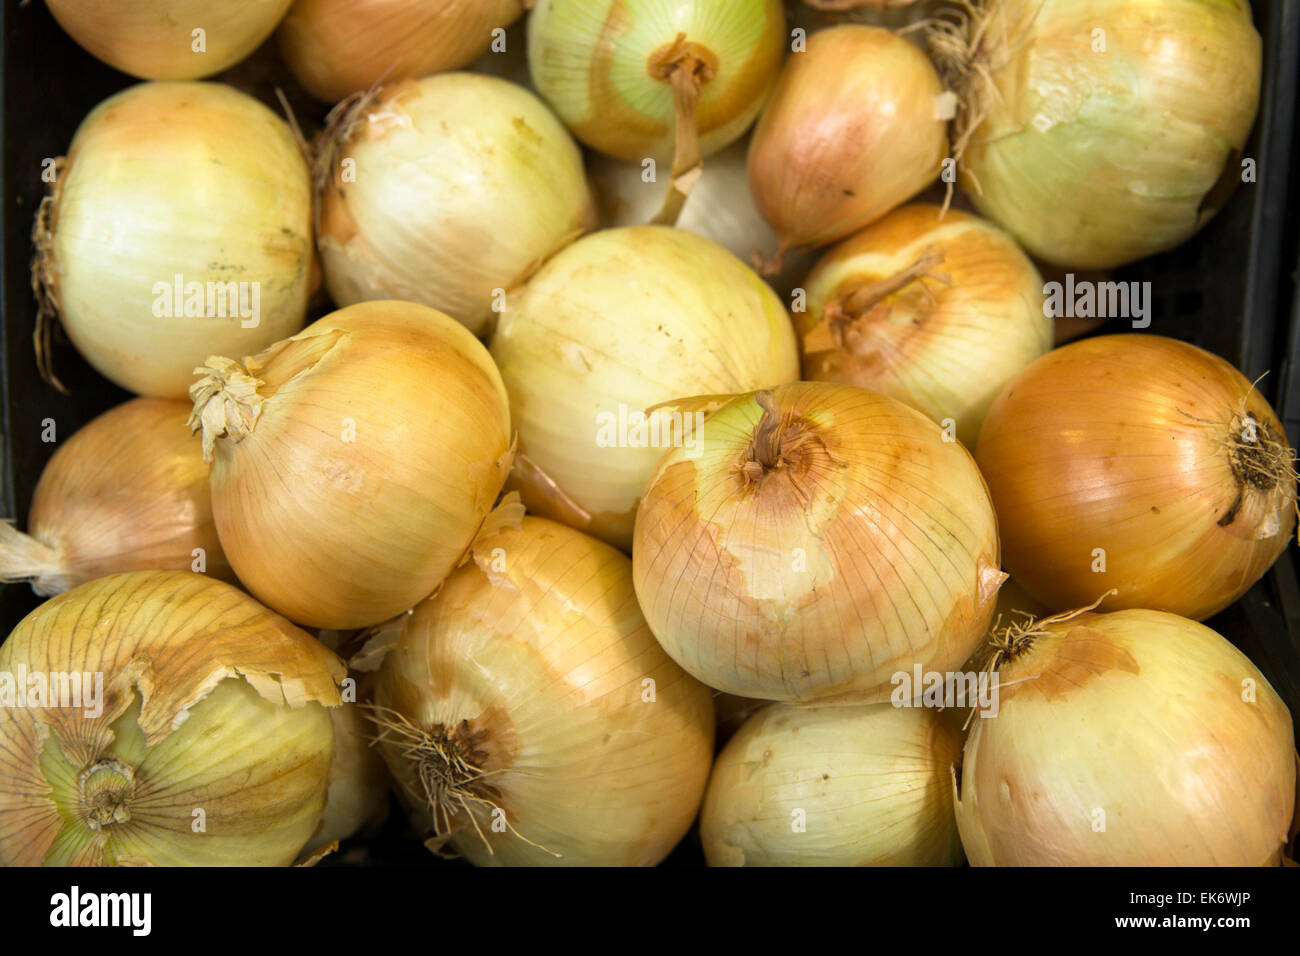 Onions in wholesale food market ready for selling - Stock Image